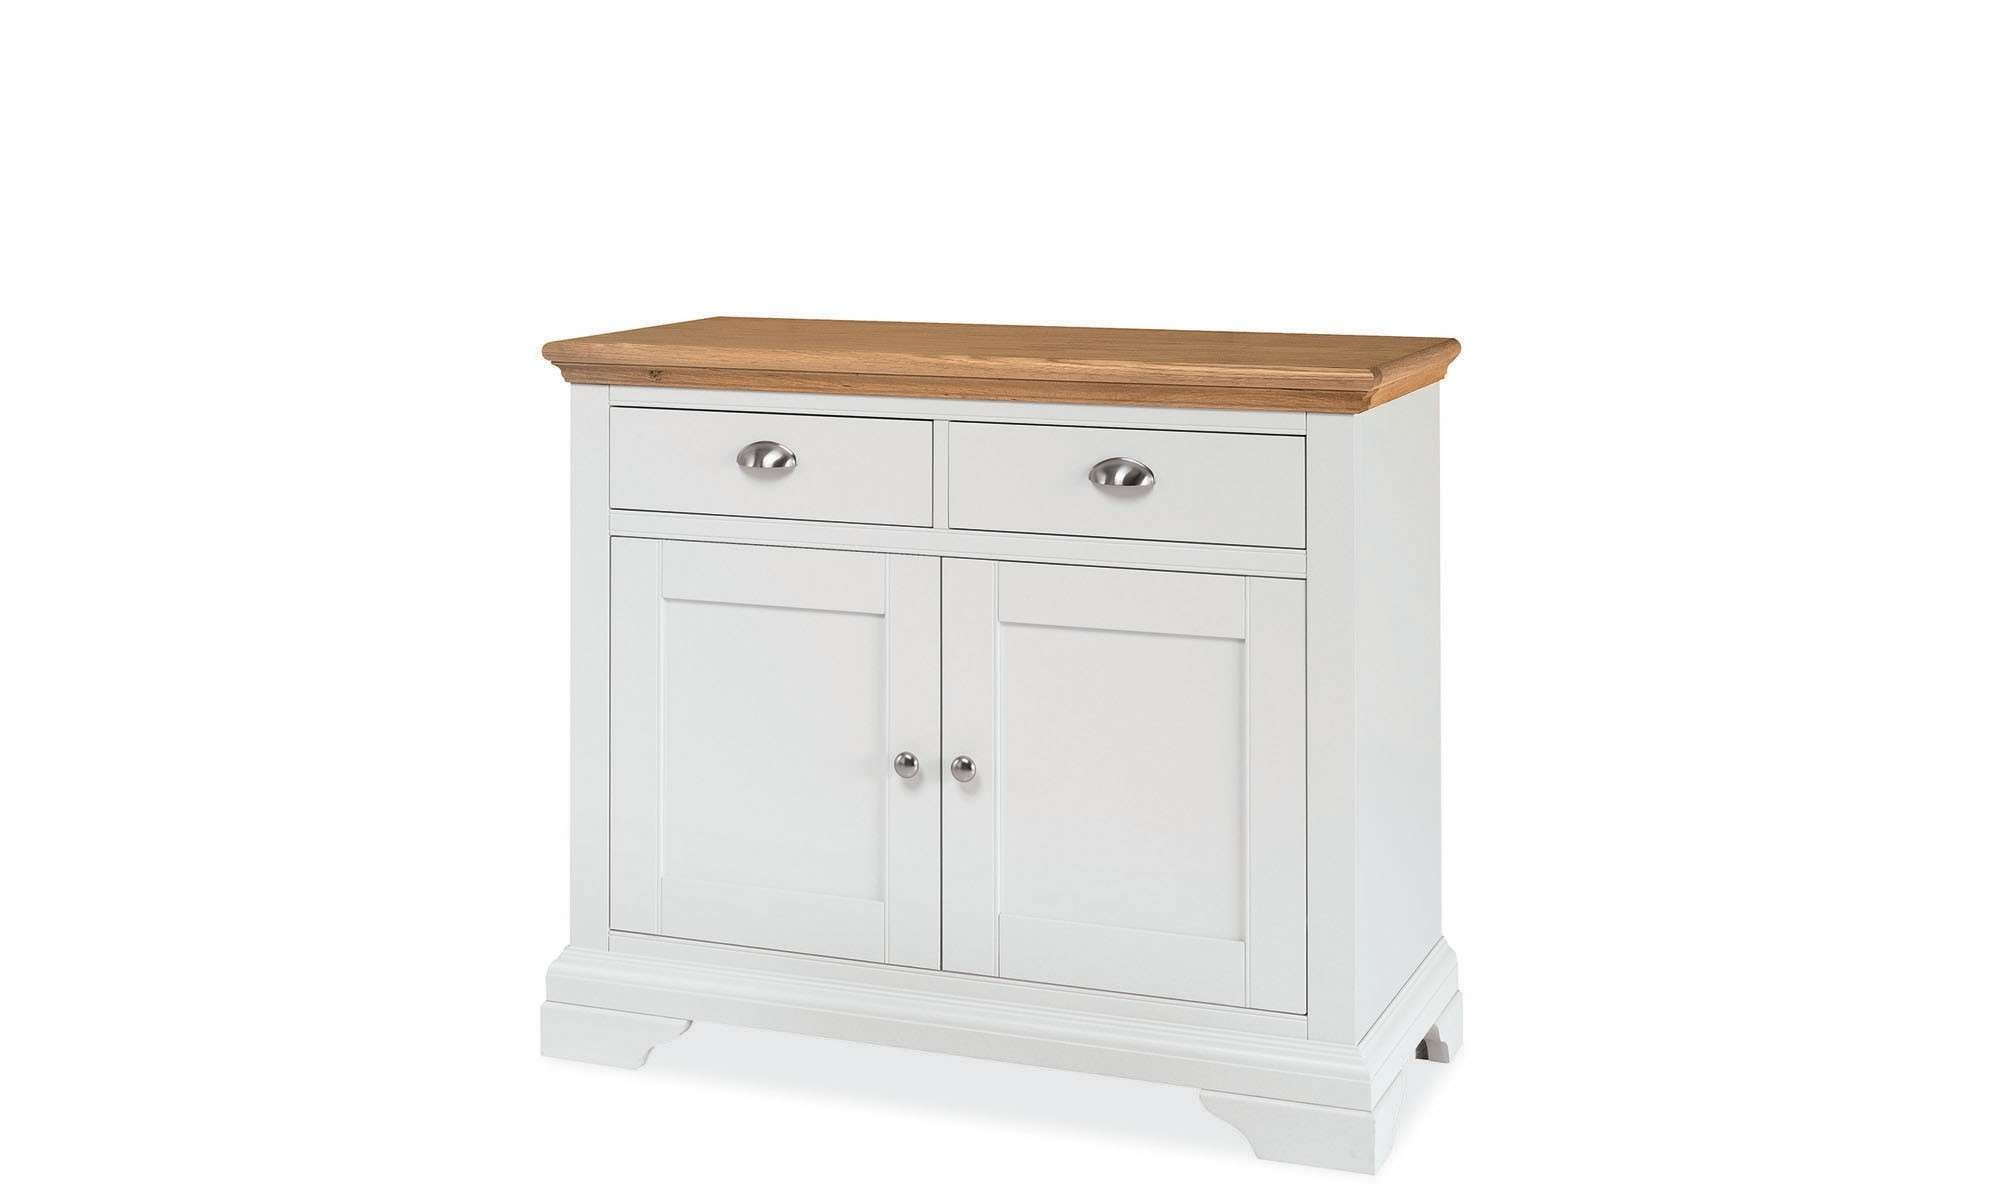 Georgie – Narrow 2 Door Cream Sideboard – Fishpools Pertaining To Cream And Oak Sideboards (View 10 of 20)